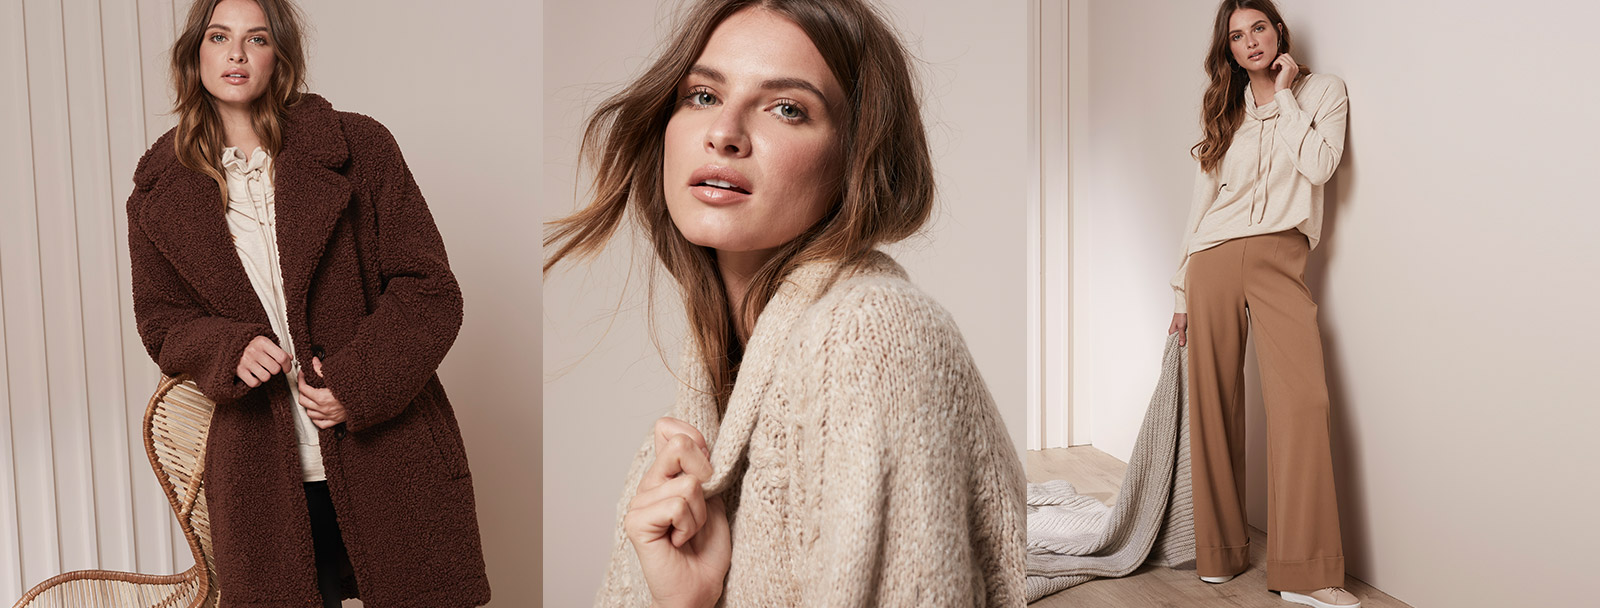 Making the case for cosy...